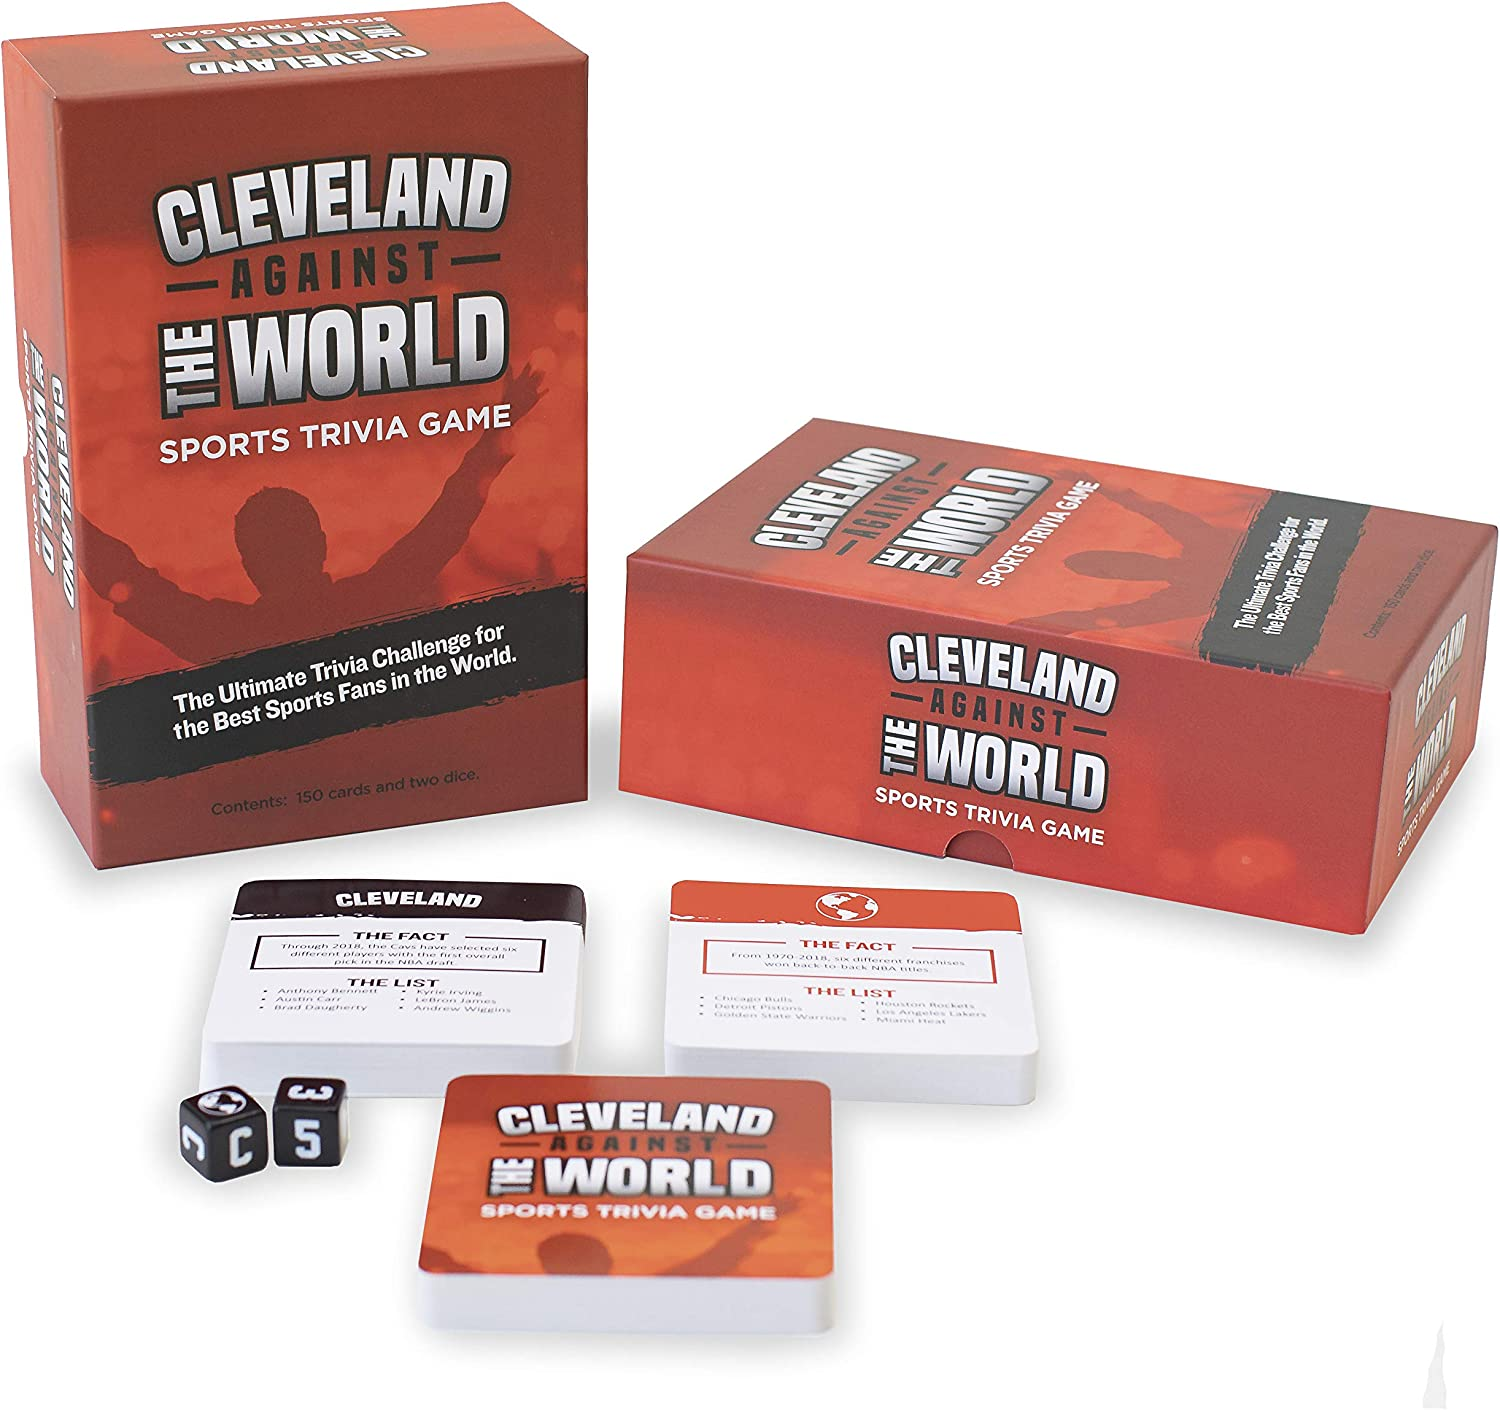 You Gotta Know Cleveland Against The World - Sports Trivia Game